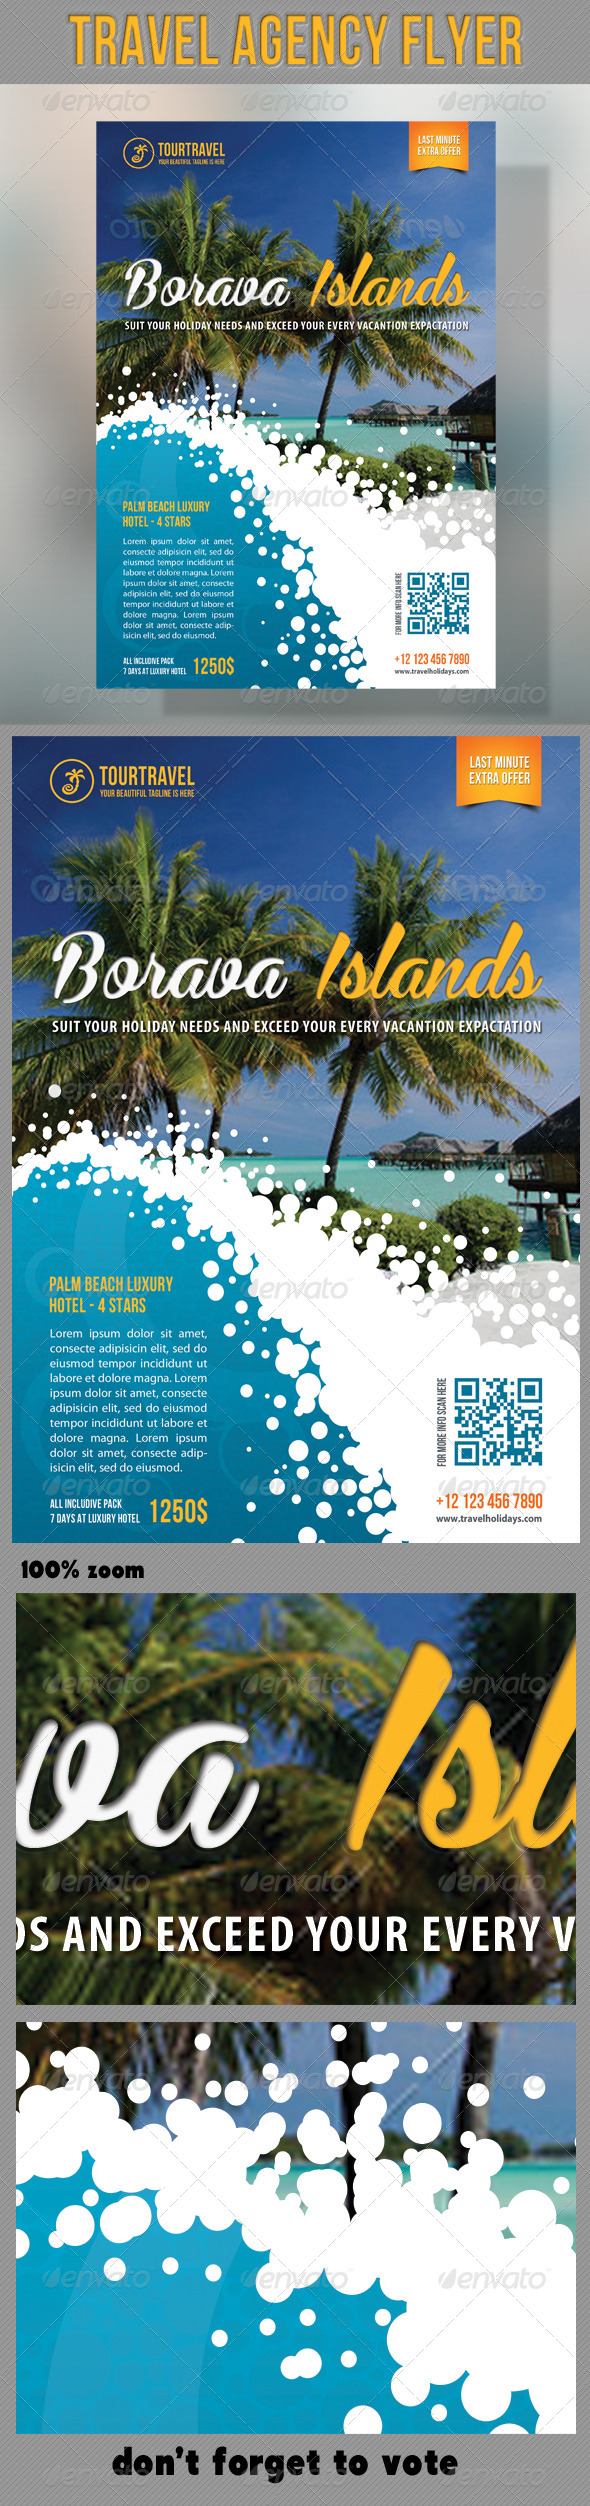 Travel Agency Corporate Flyer 11 - Holidays Events